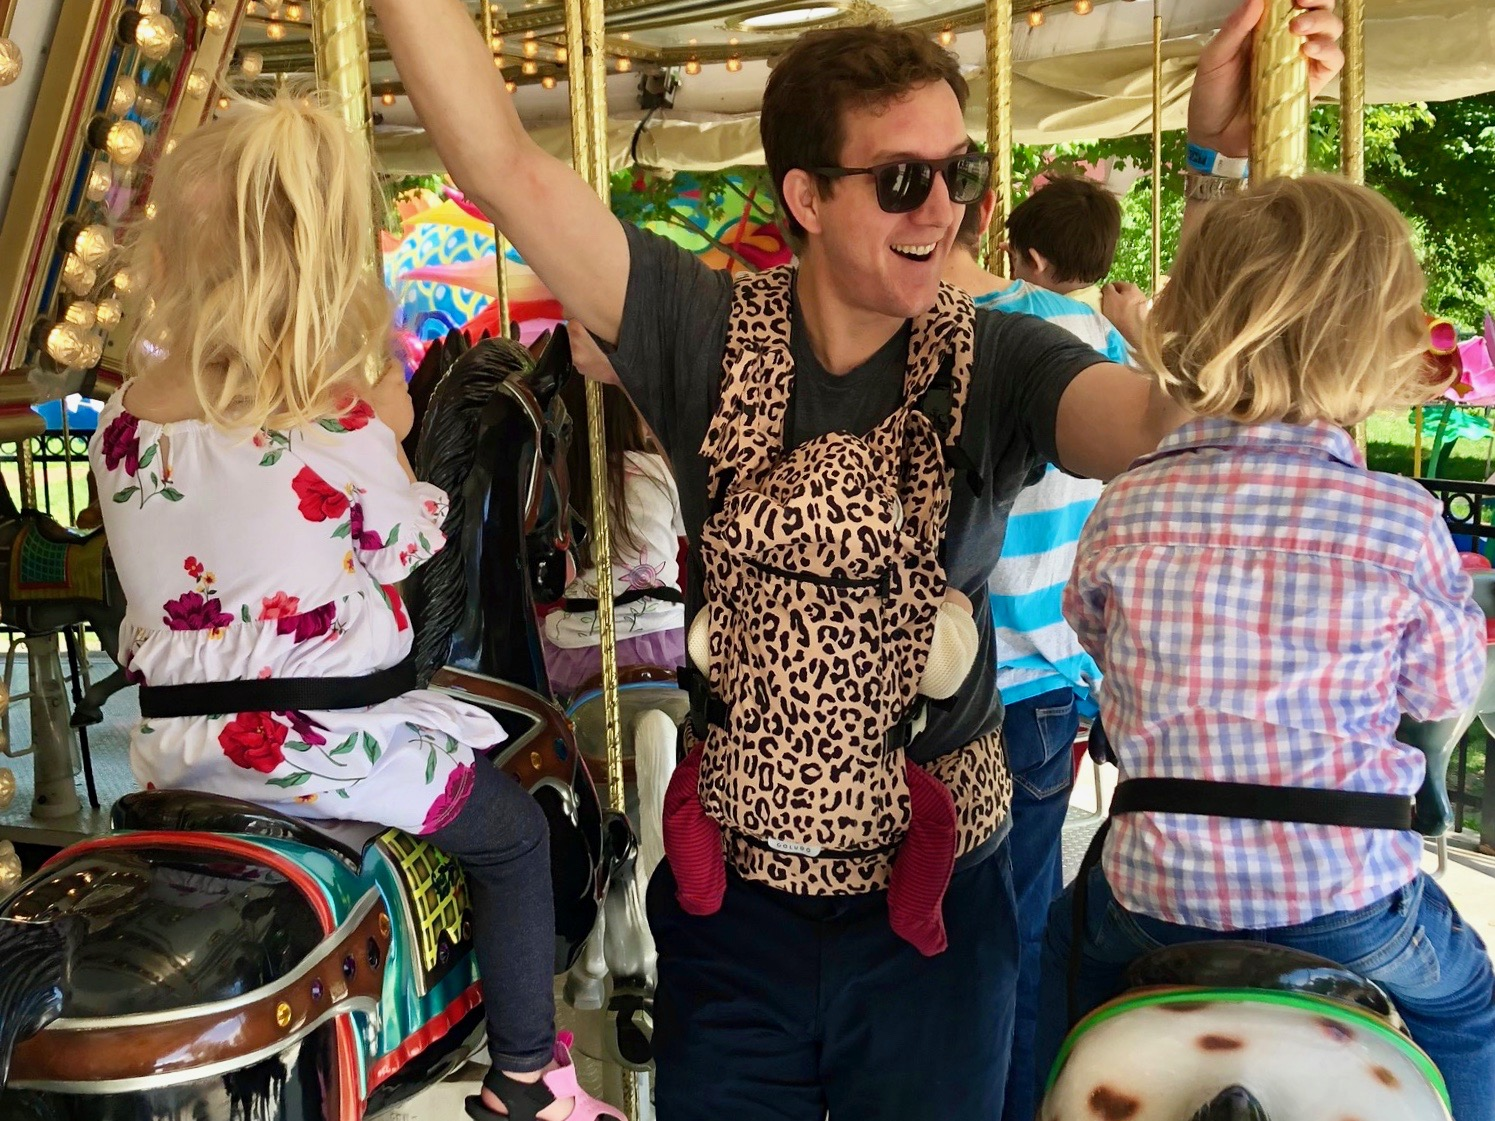 Ted has twins:  And a baby. So he's a Philly family travel expert, whether he likes it or not. Here his kiddos Fritz, Lark, and baby Win—sporting the Colugo Carrier in the  Wild Child  print—are riding the carousel in Franklin Square.